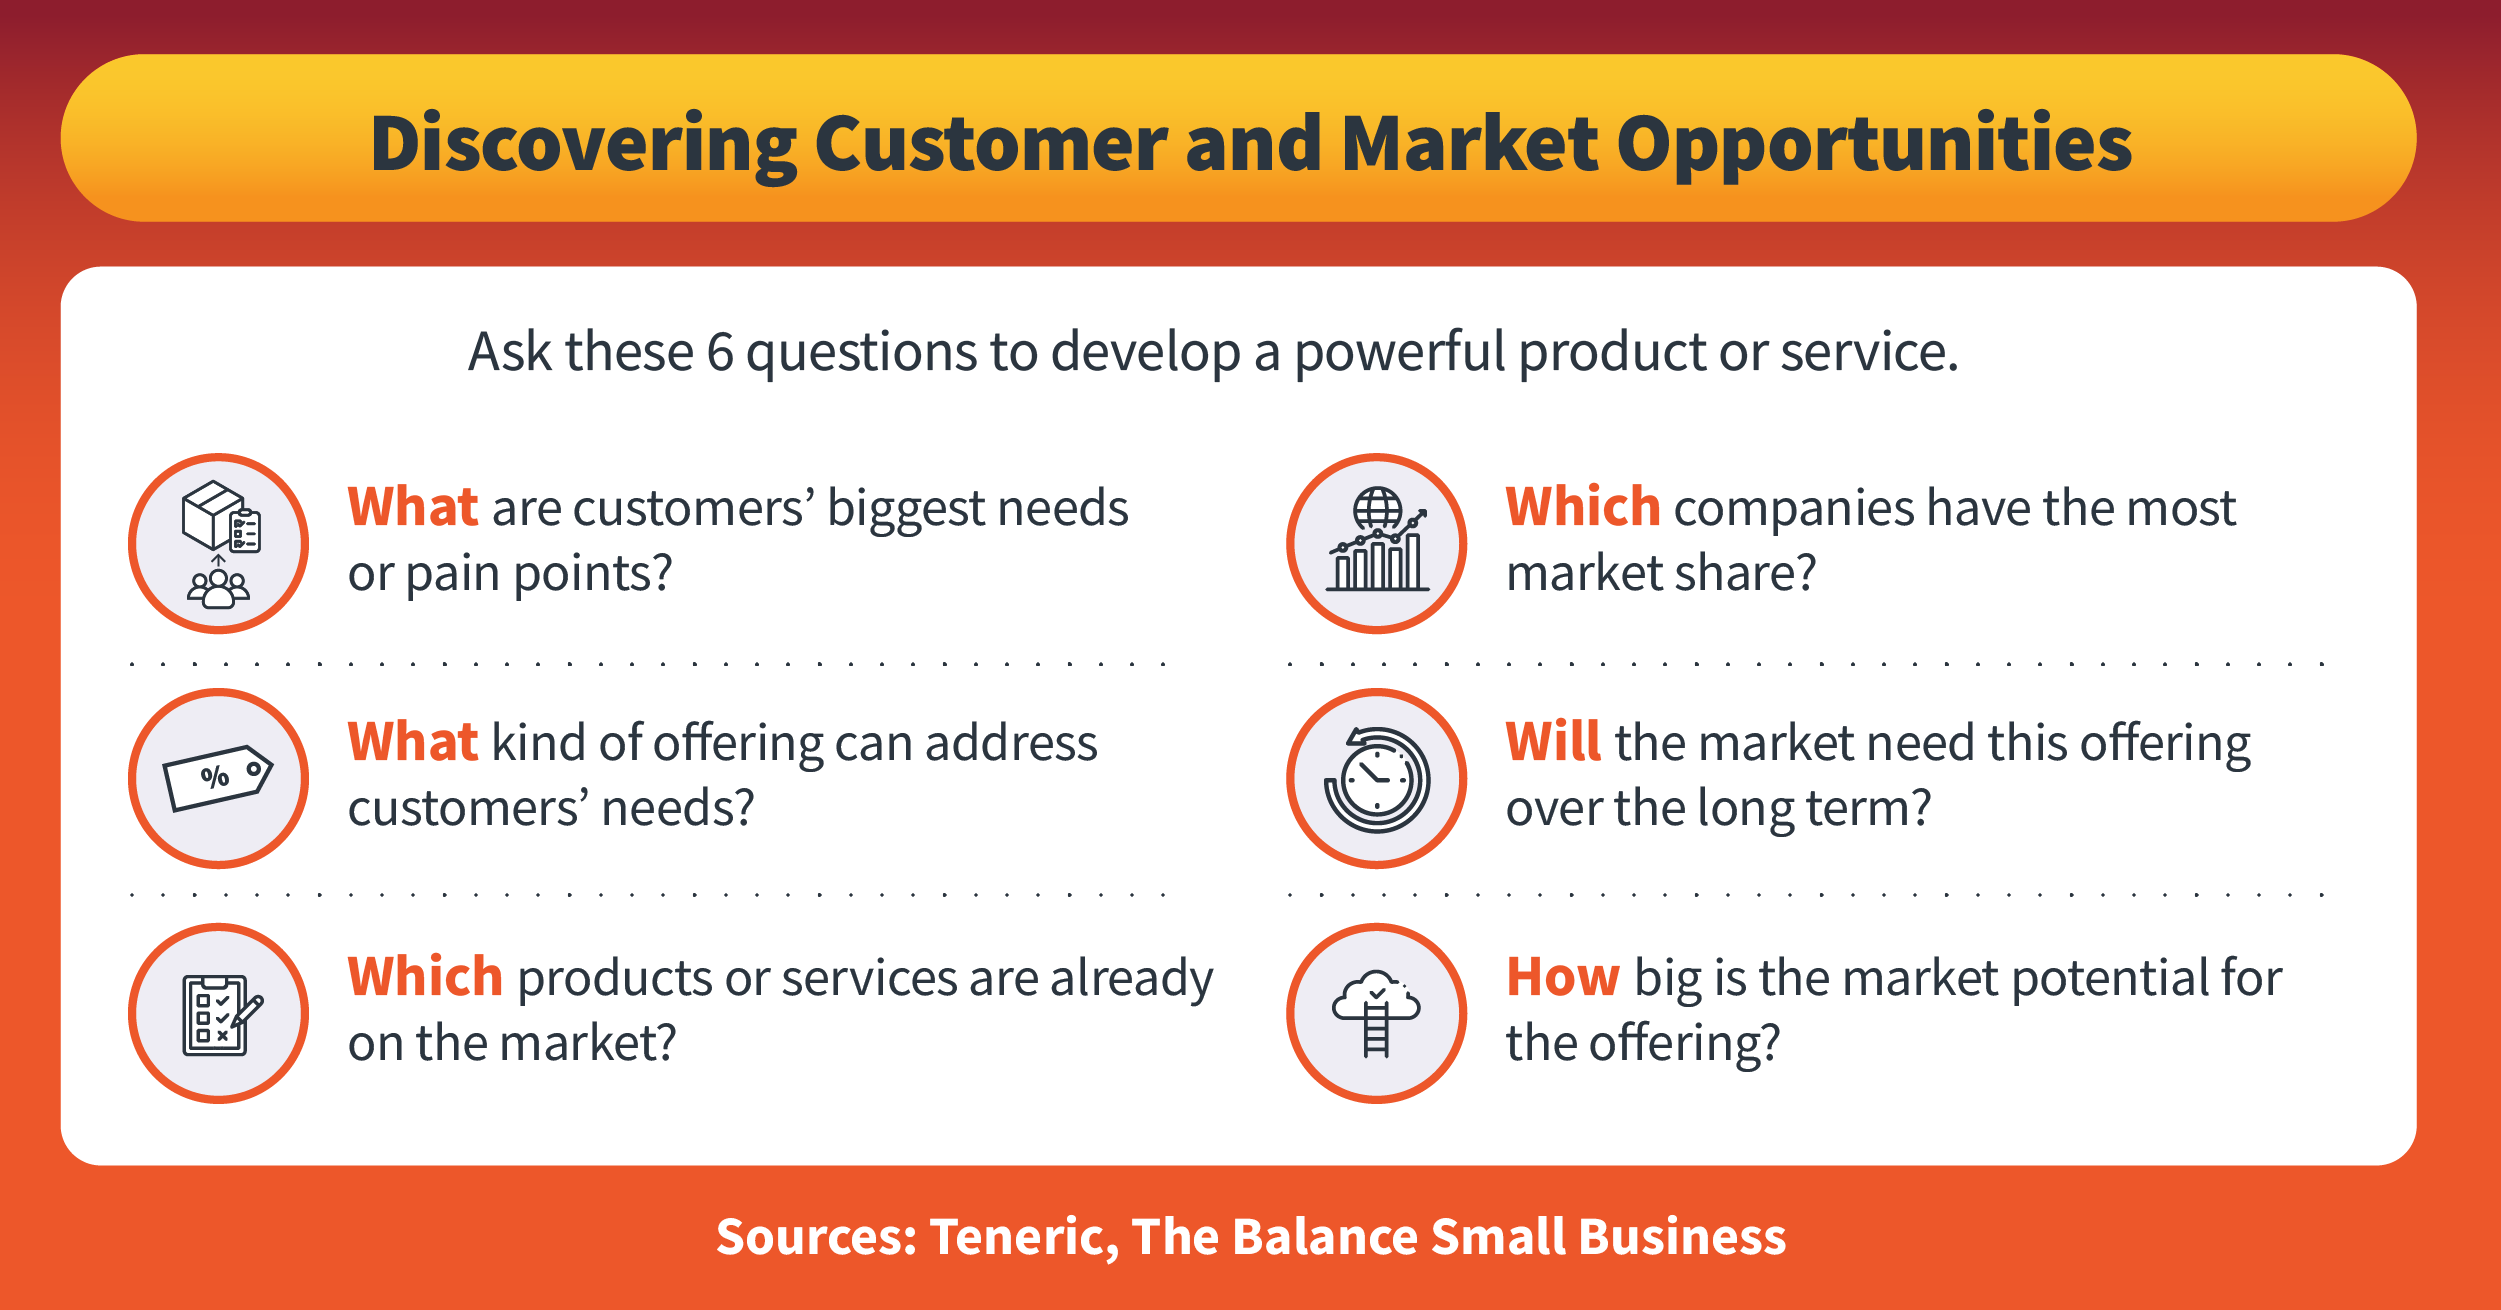 Six questions that can help businesses develop successful products.